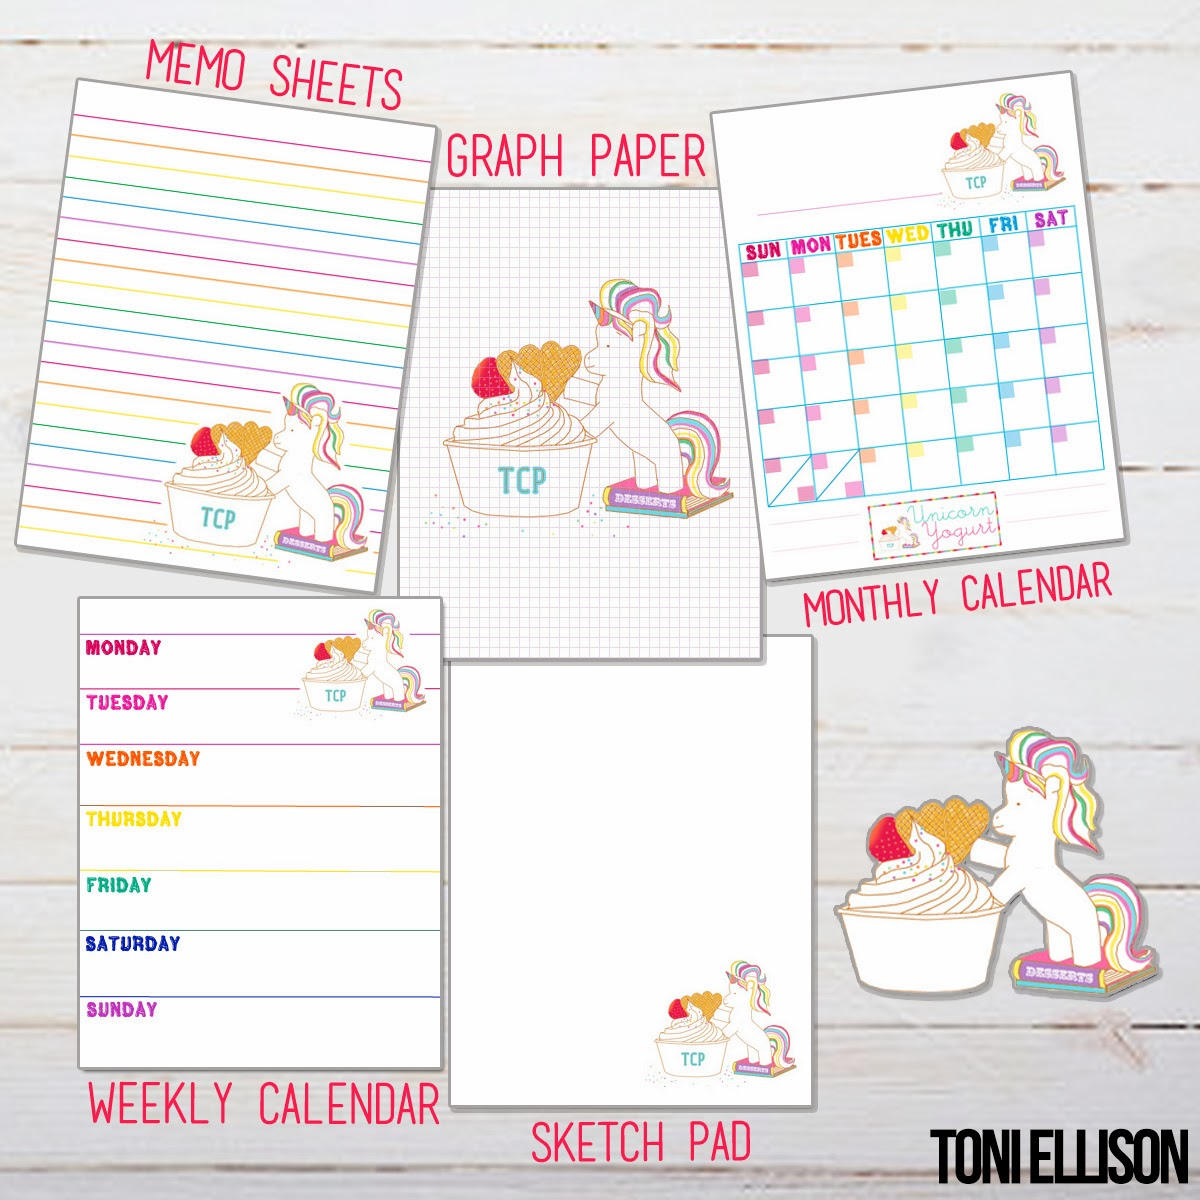 Agenda   Planner   Stationery DIY   How To Make Your Own Agenda   Toni  Ellison  How To Create A Agenda